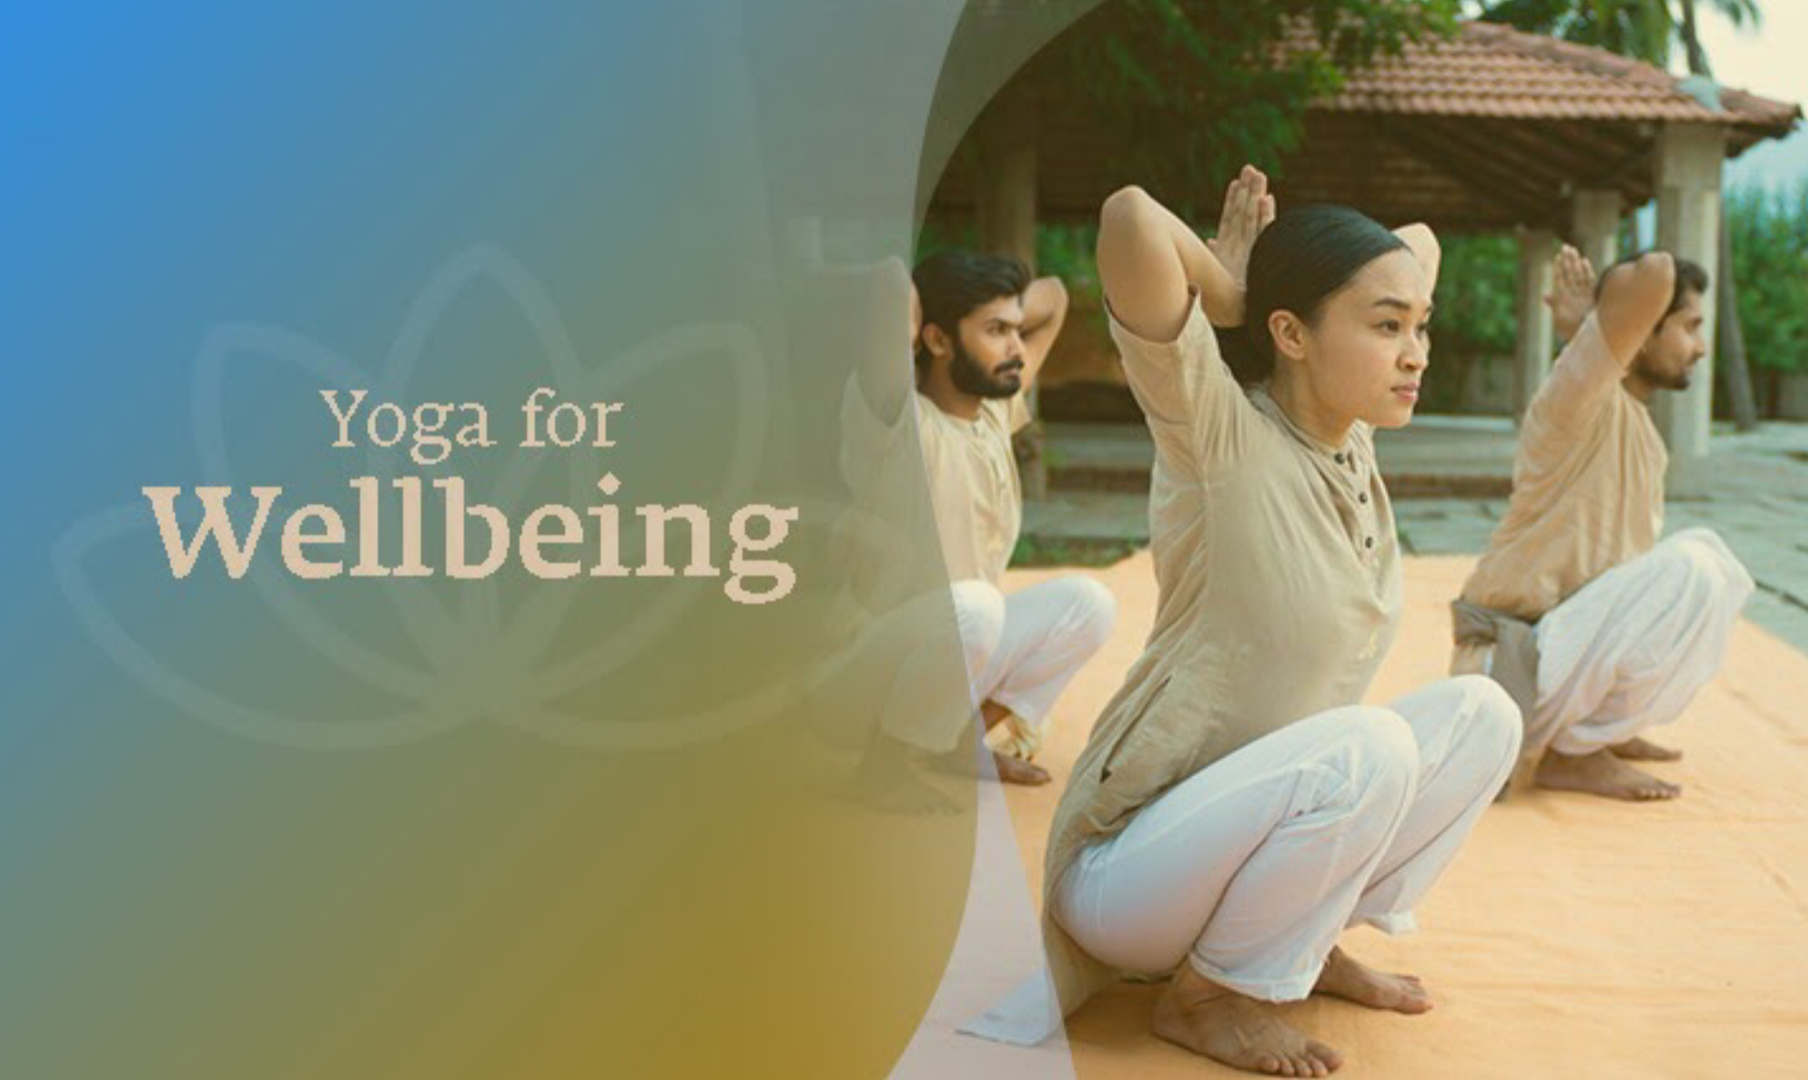 This session intends to bring the timeless benefits of yoga through simple yet potent yogic practices.